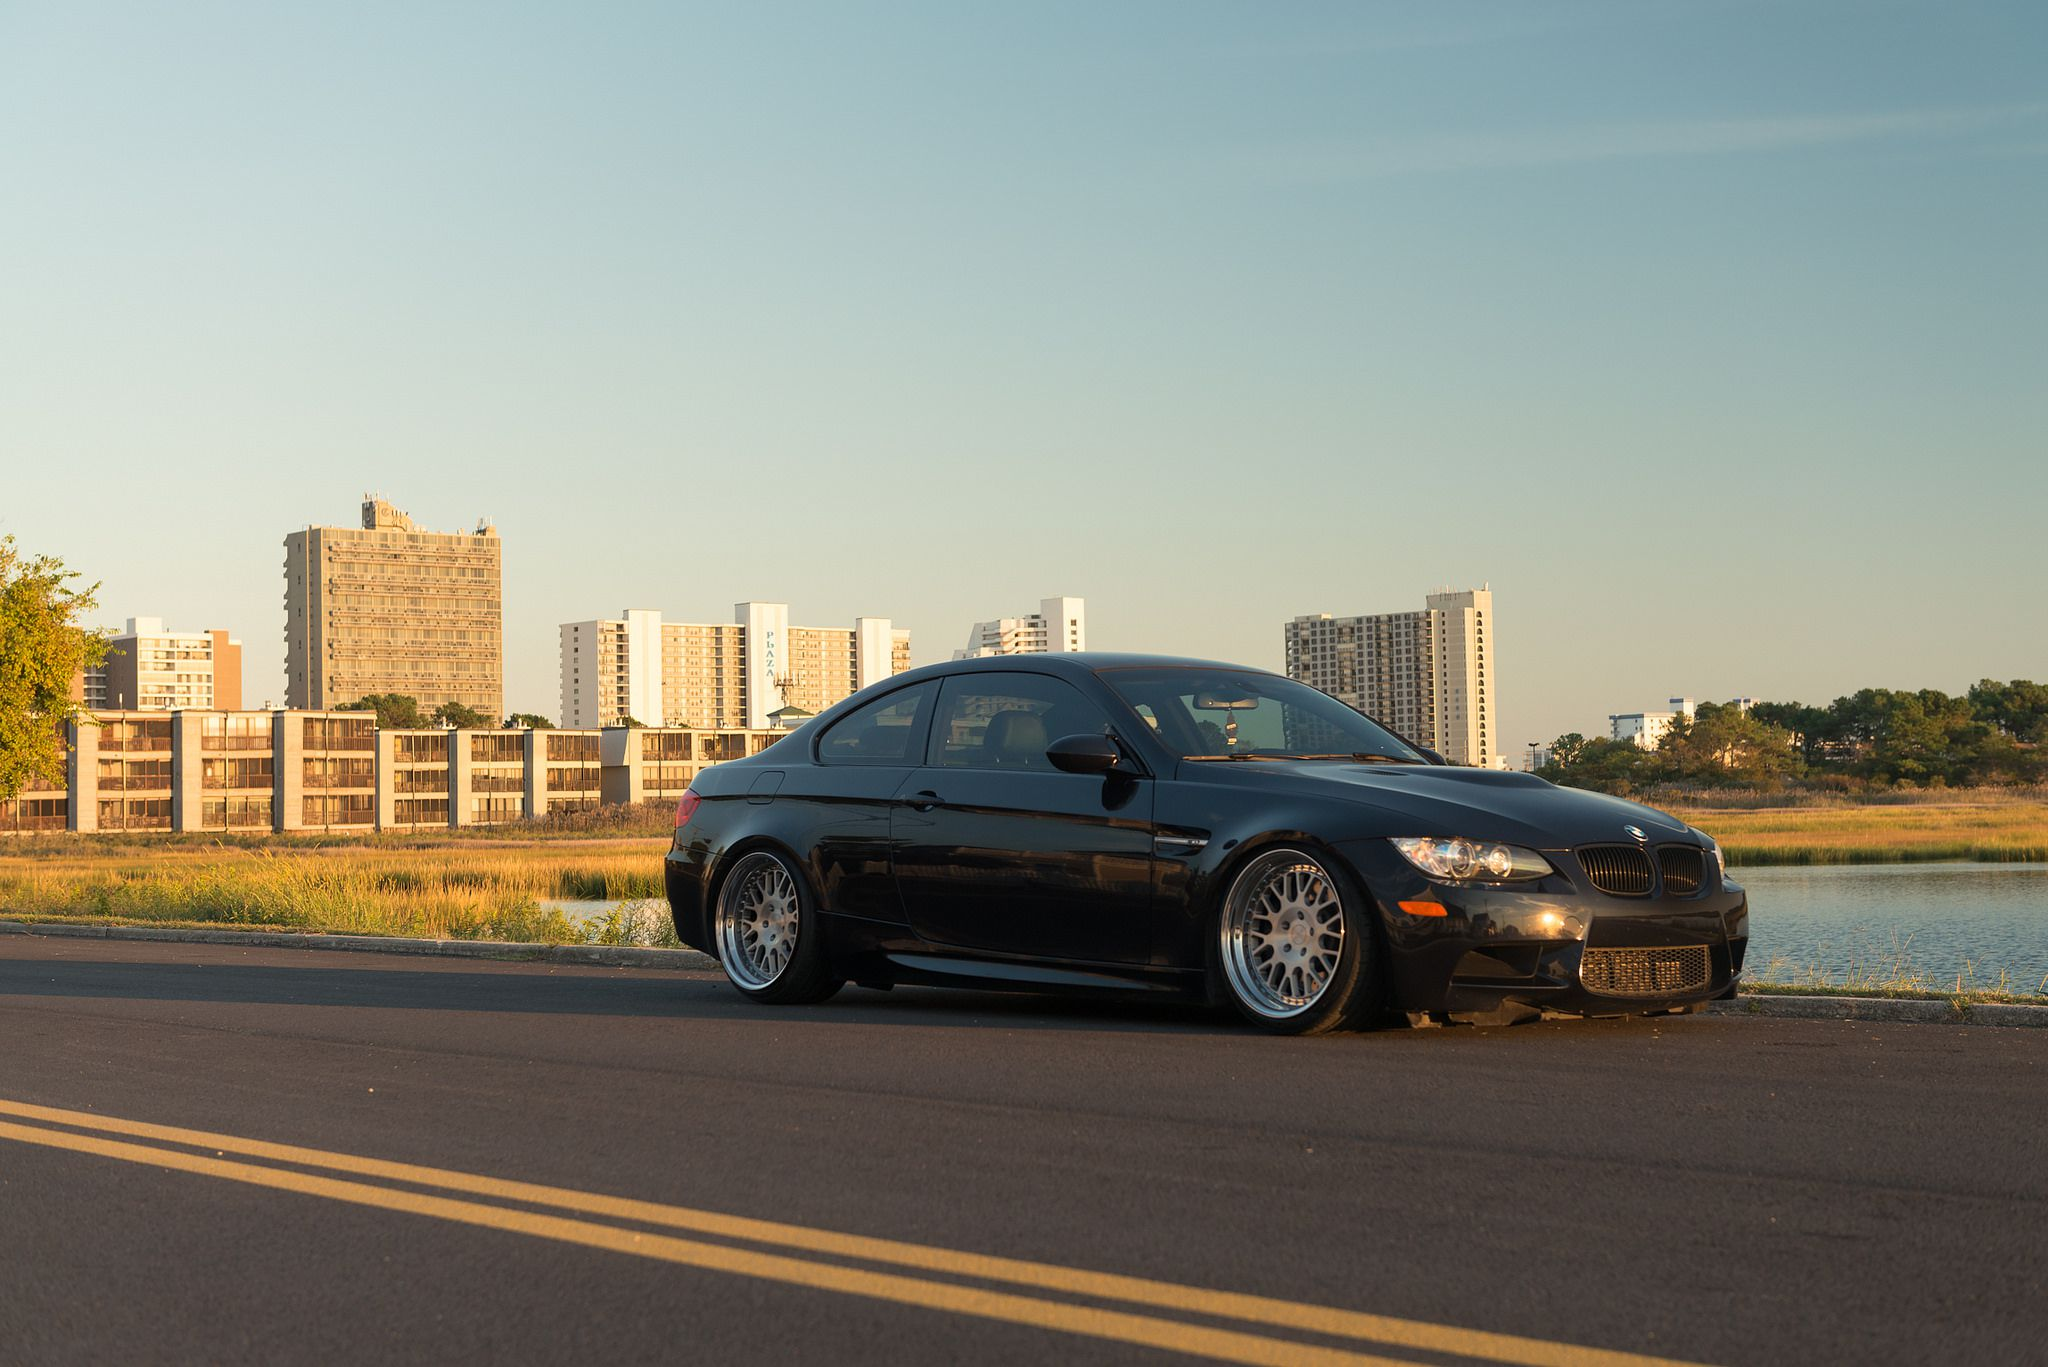 Rotiform LVS wheels - black BMW M3 coupe in high resolution